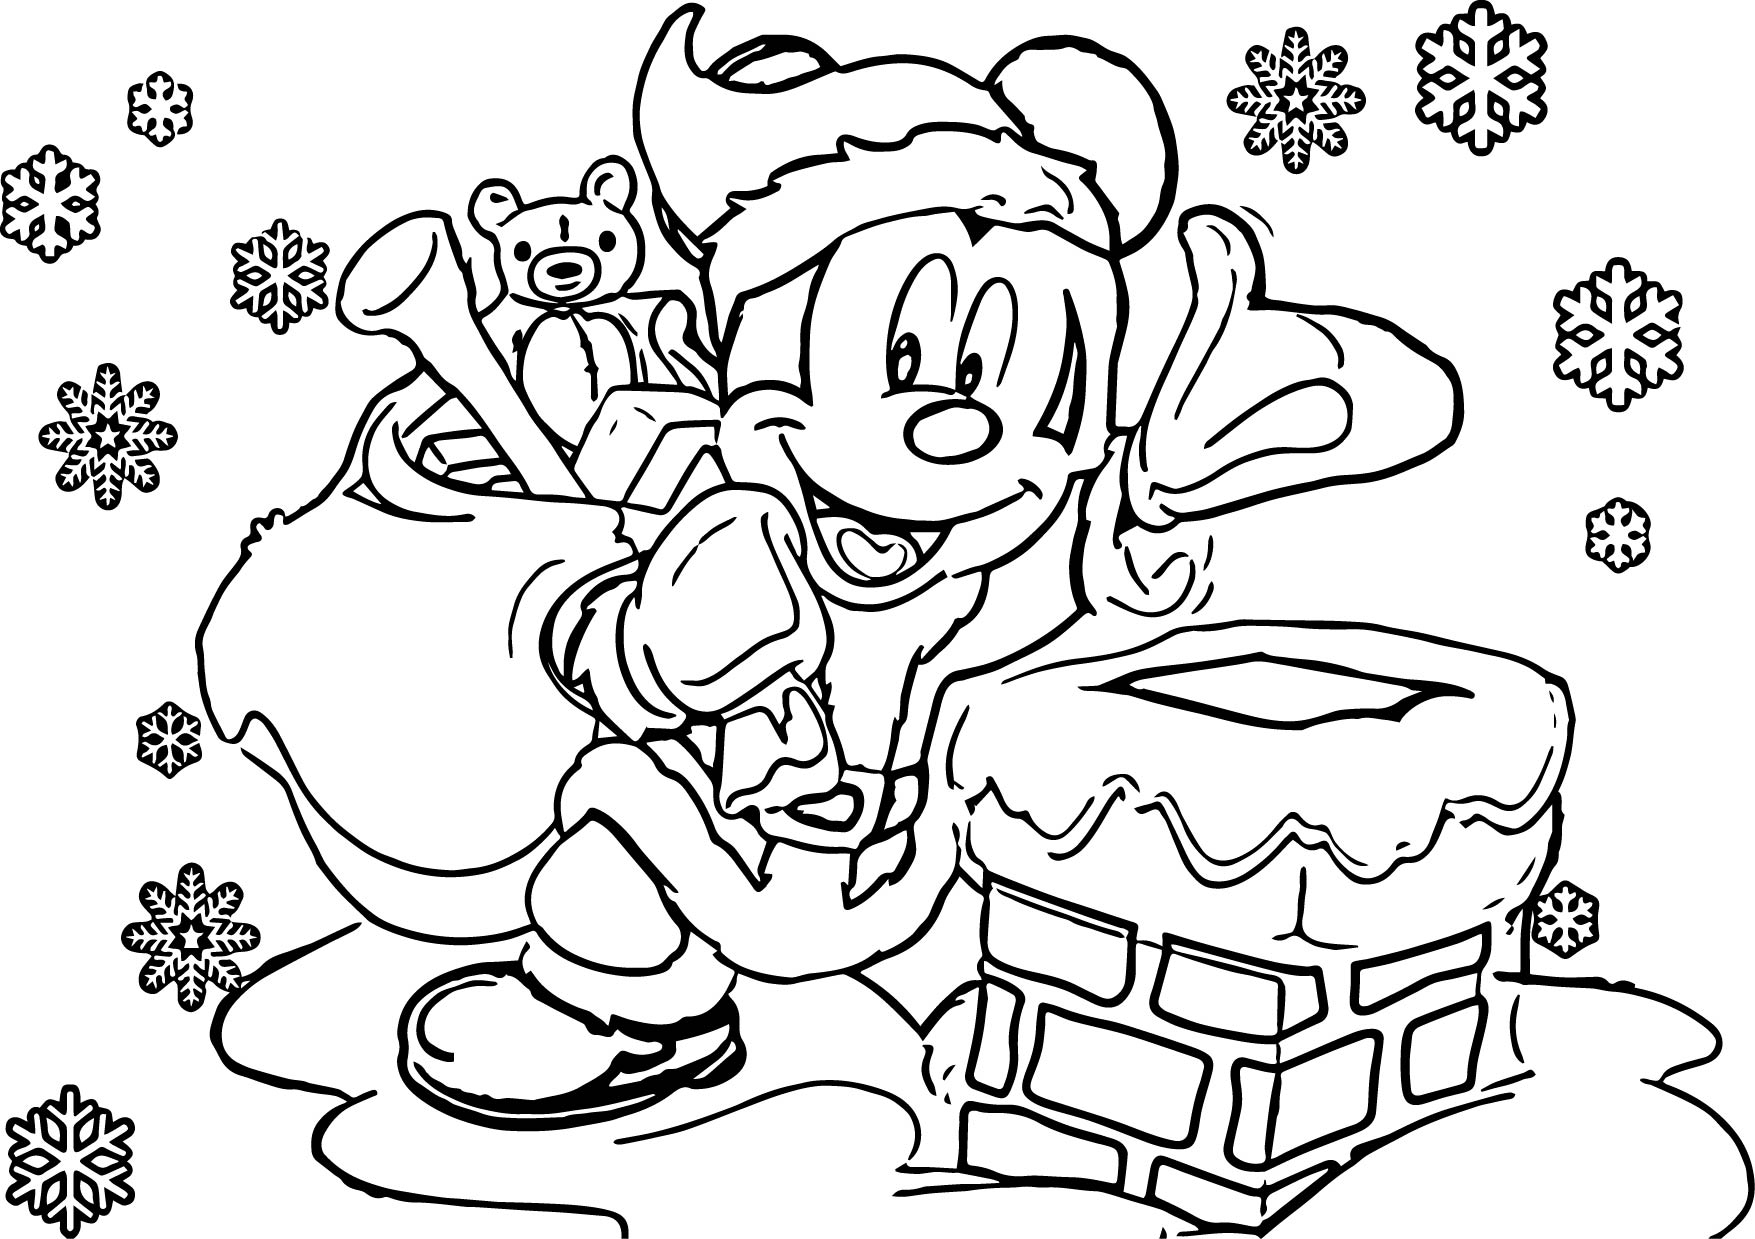 Jasmine Christmas Coloring Pages With Fresh Disney Collection Printable